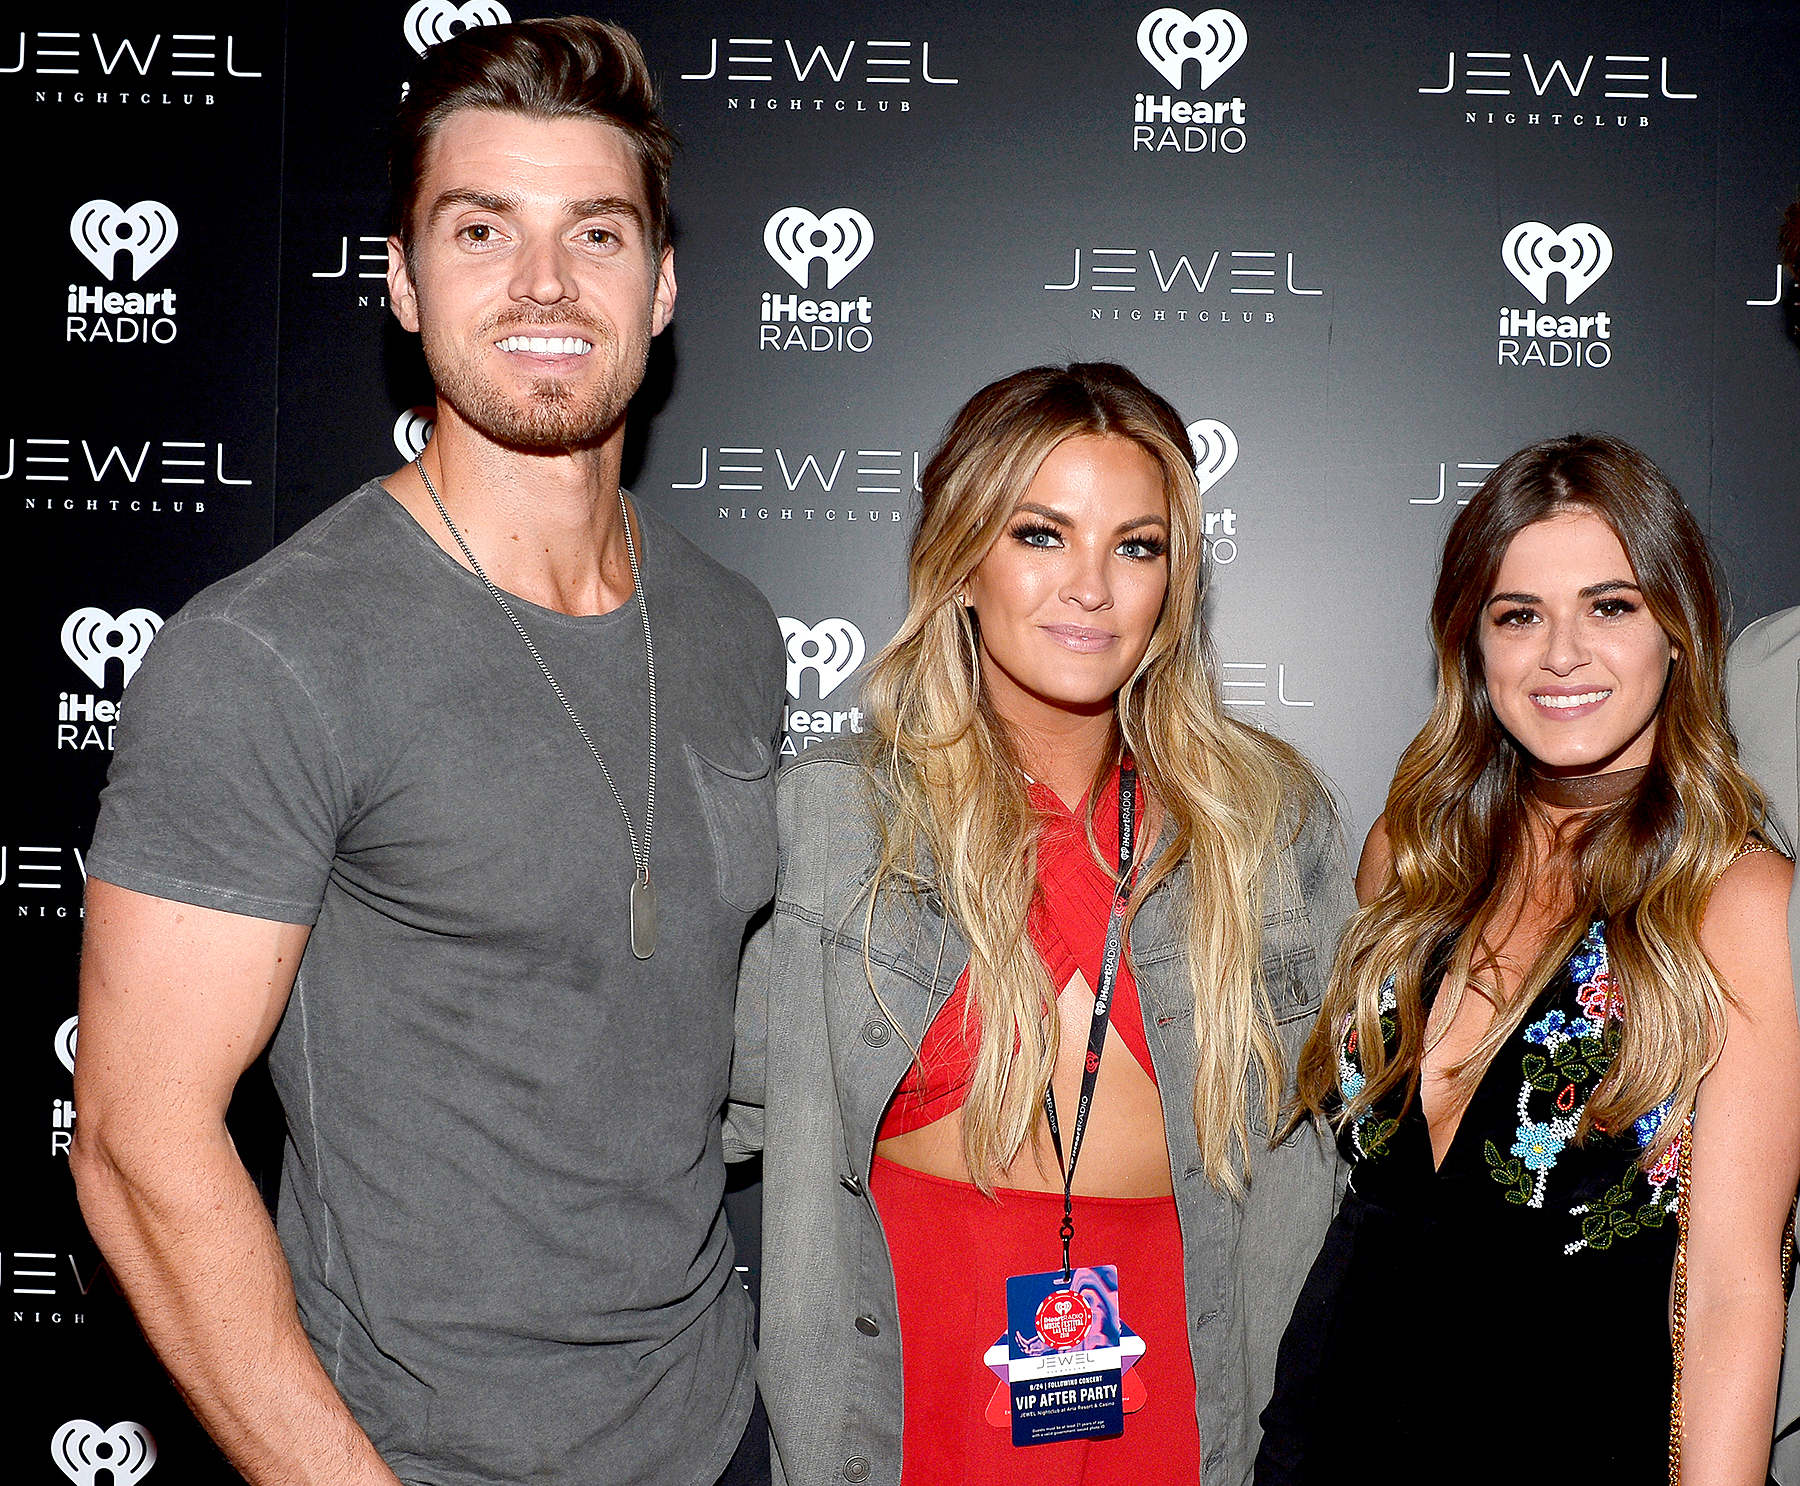 Luke Pell, Becca Tilley and JoJo Fletcher arrive at the iHeartRadio Music Festival afterparty at Jewel Nightclub at the Aria Resort & Casino on September 24, 2016, in Las Vegas.